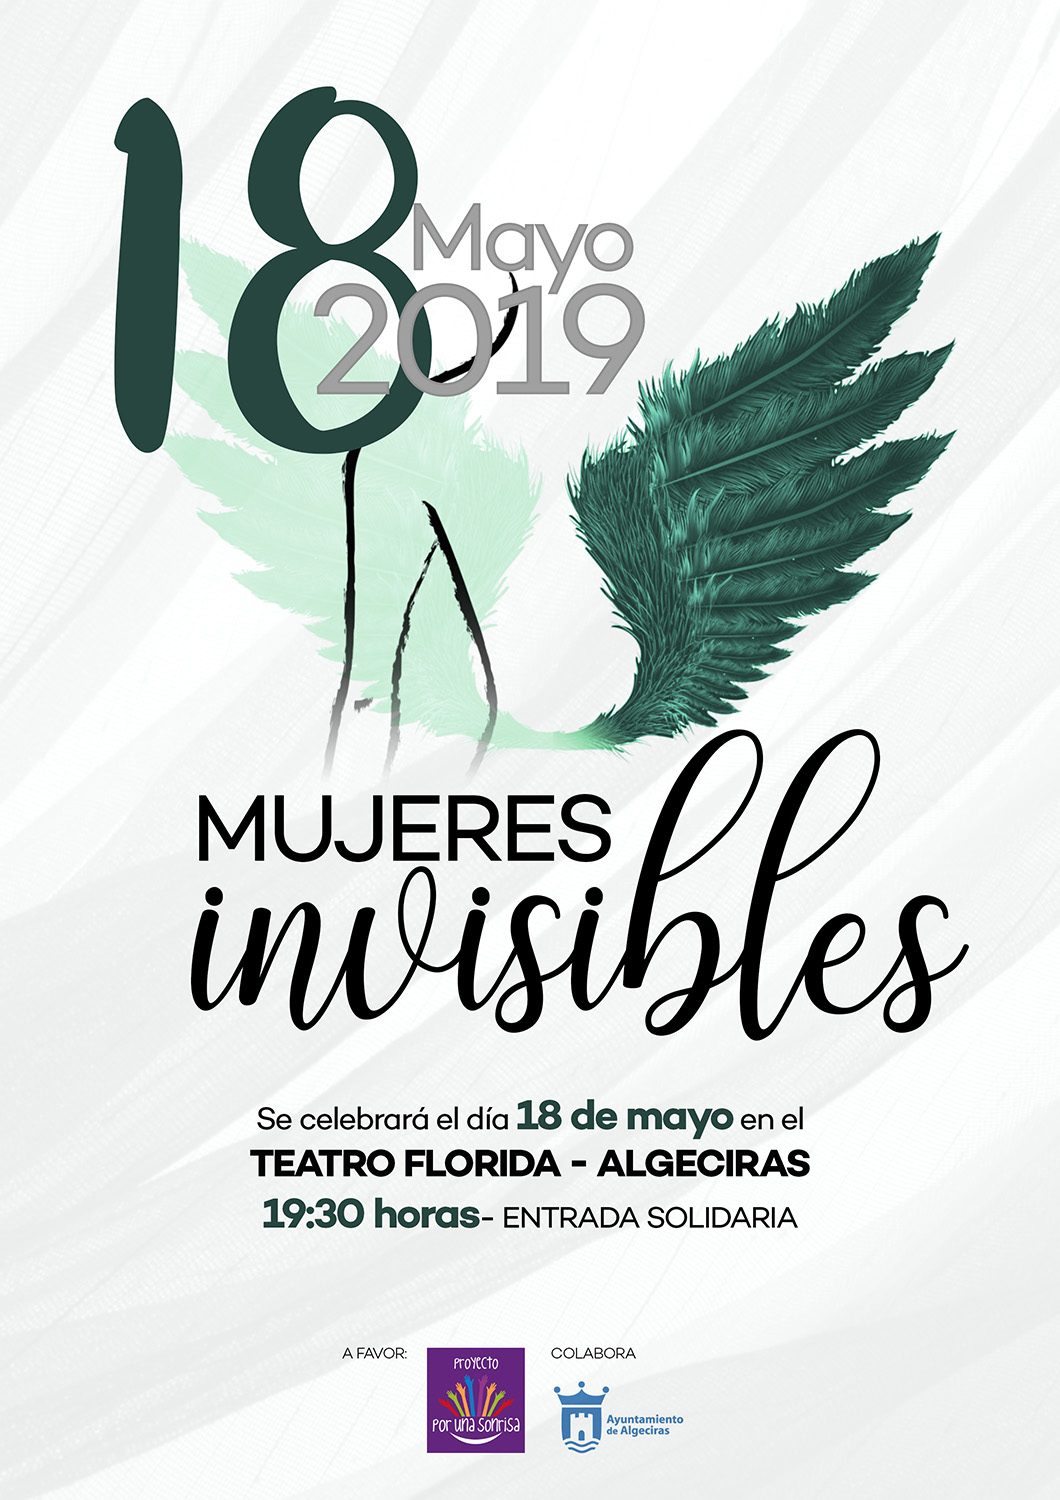 2mujeres invisibles2019